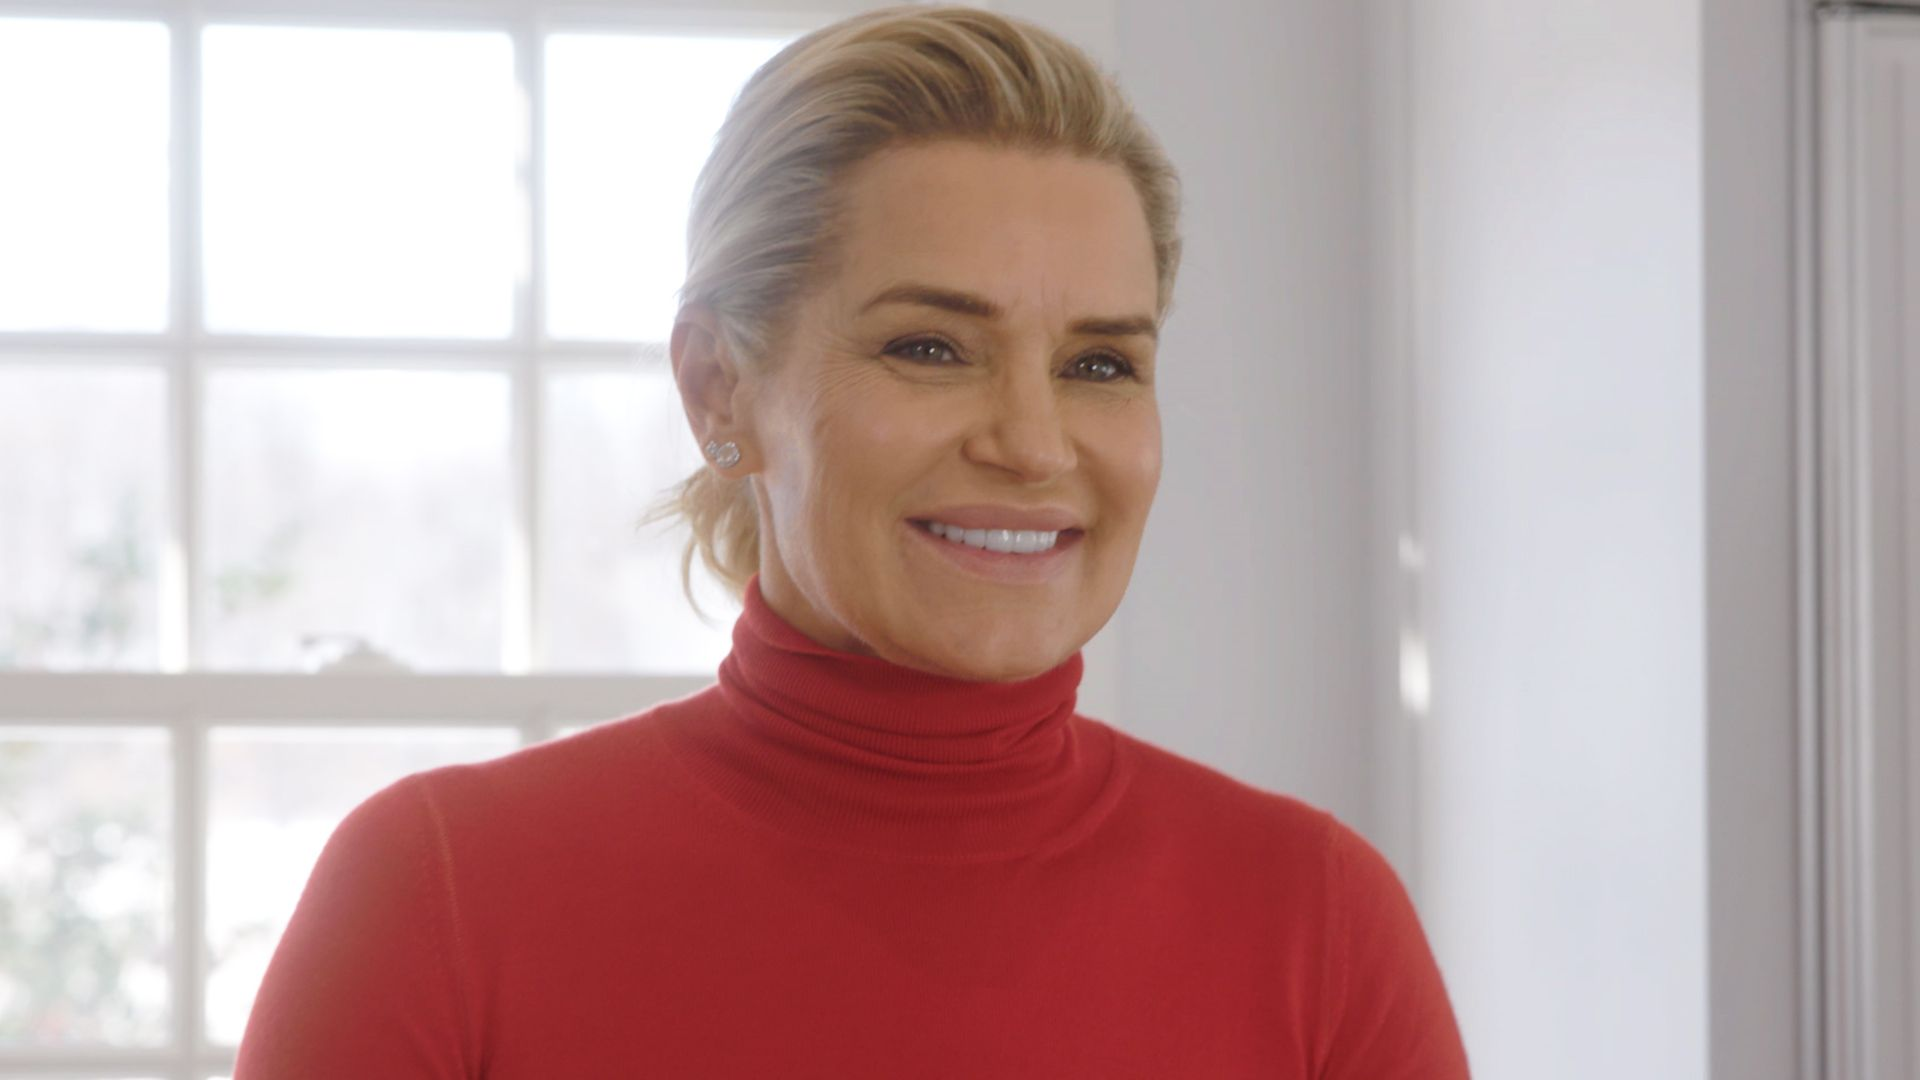 Yolanda Hadid has had her botox, fillers and breast implants removed